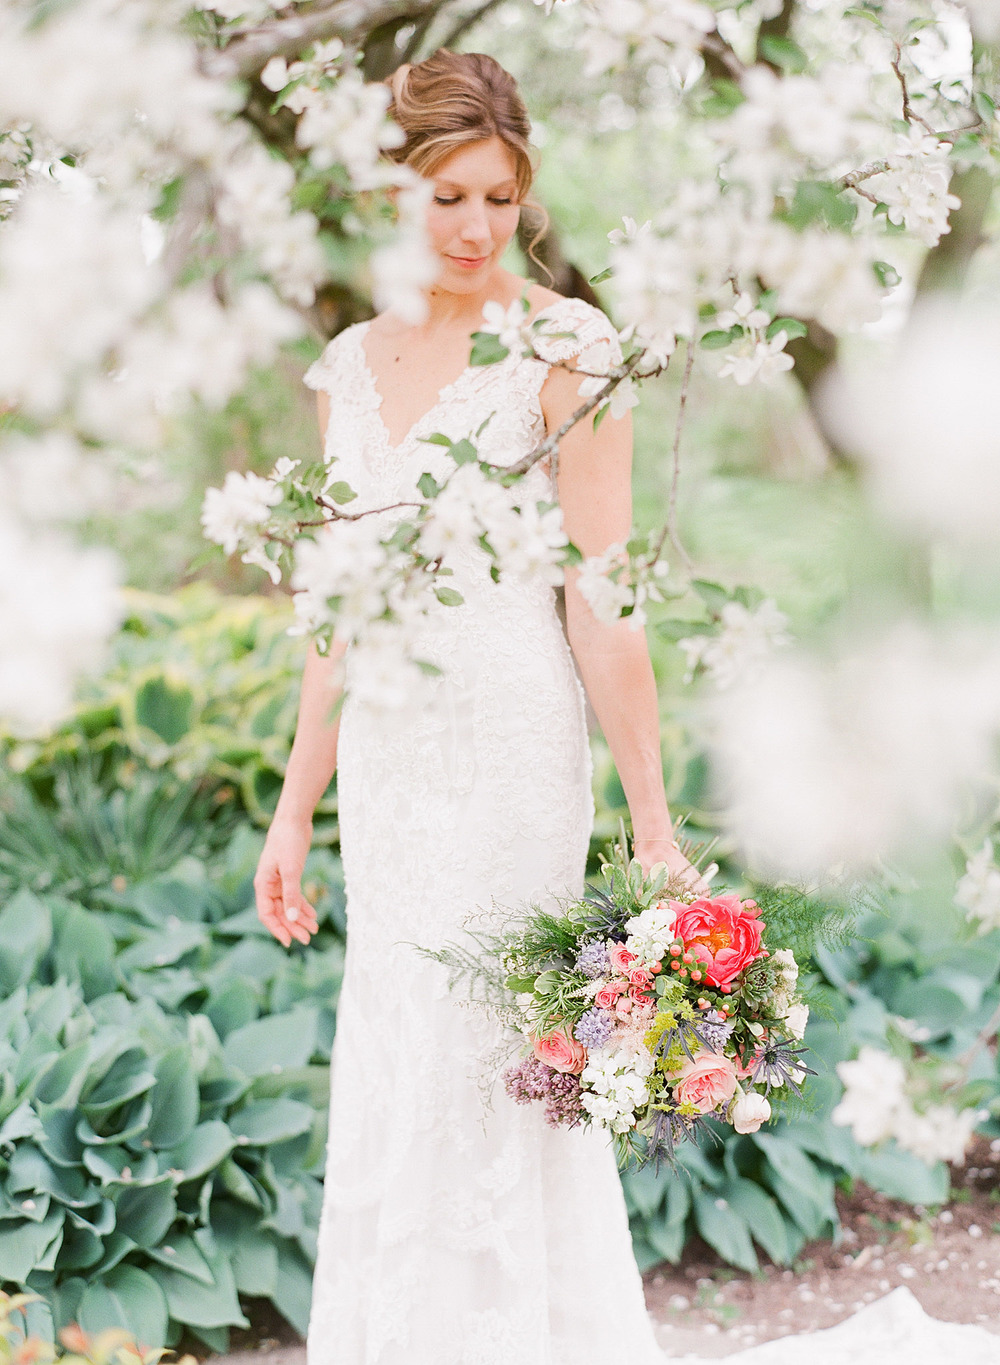 the bride stands among blooming trees and hostas holding her asymmetrical bouquet of ranunculus peonies terms lavender and roses at her springtime wedding at Northwind Perennial Gardens - a beautiful wisconsin wedding venue-  while Destination Wedding Photographer Lexia Frank photographs her wisconsin wedding on film